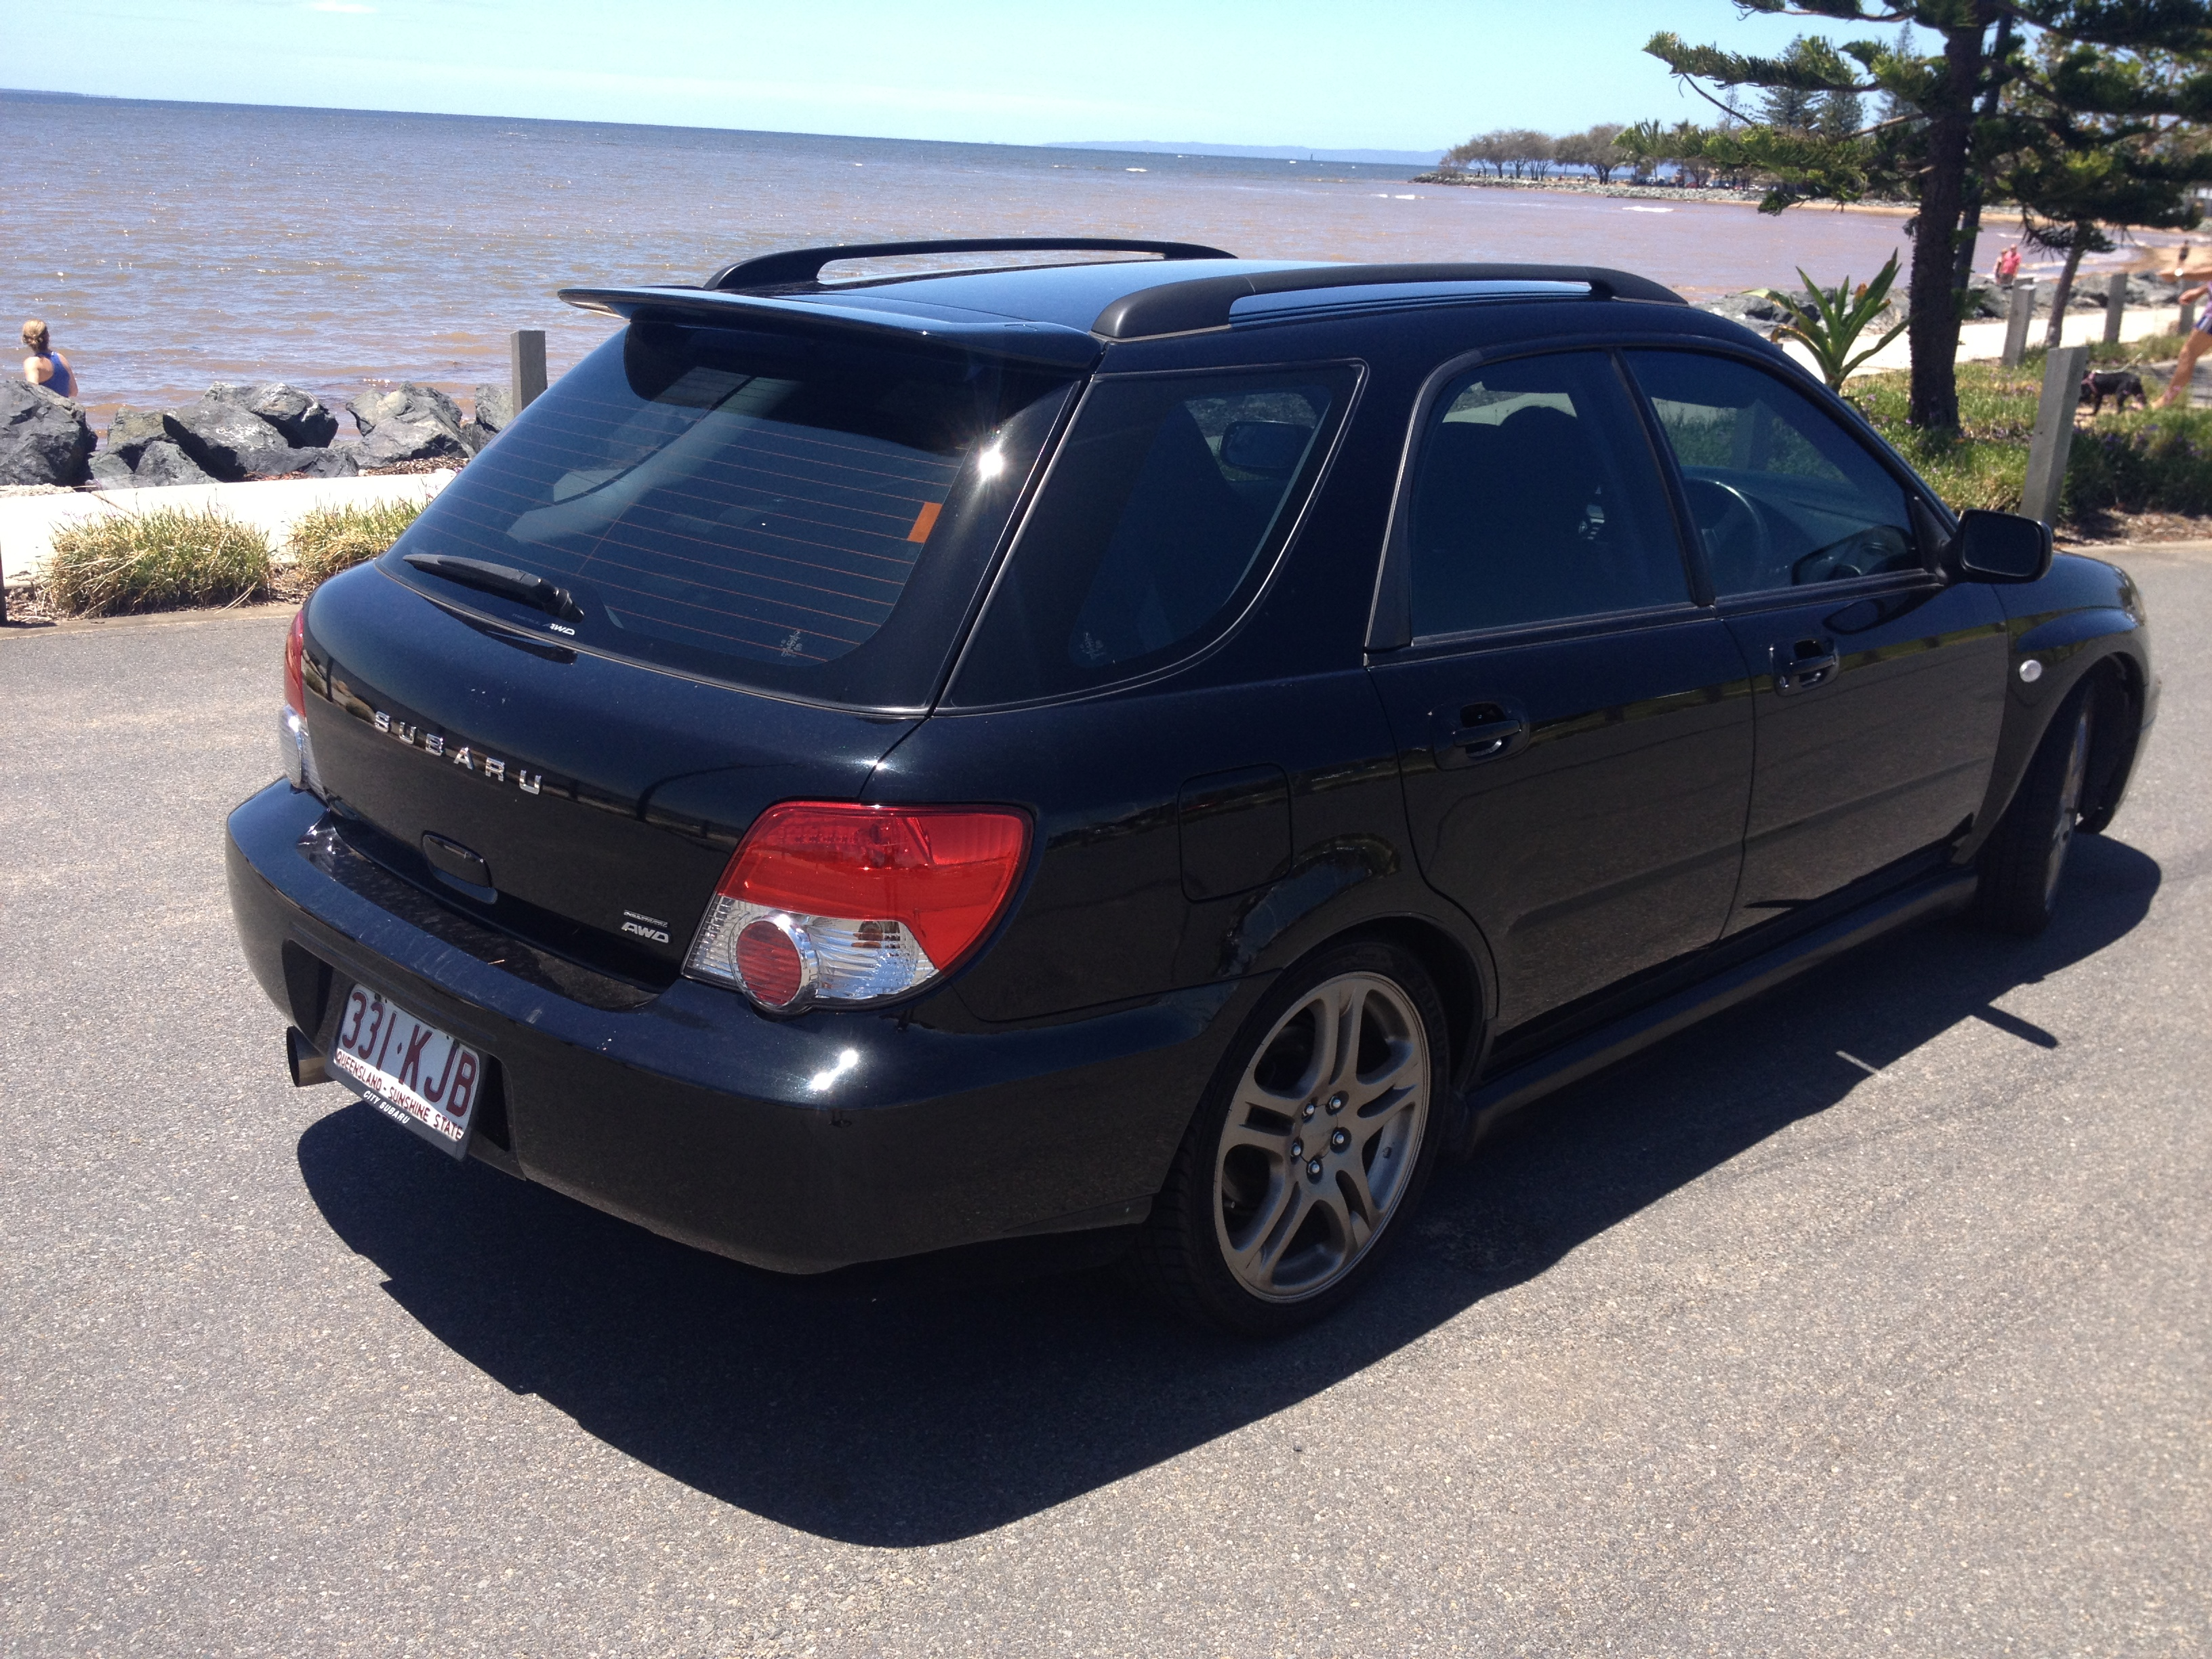 2005 subaru impreza rs awd my05 car sales qld brisbane. Black Bedroom Furniture Sets. Home Design Ideas